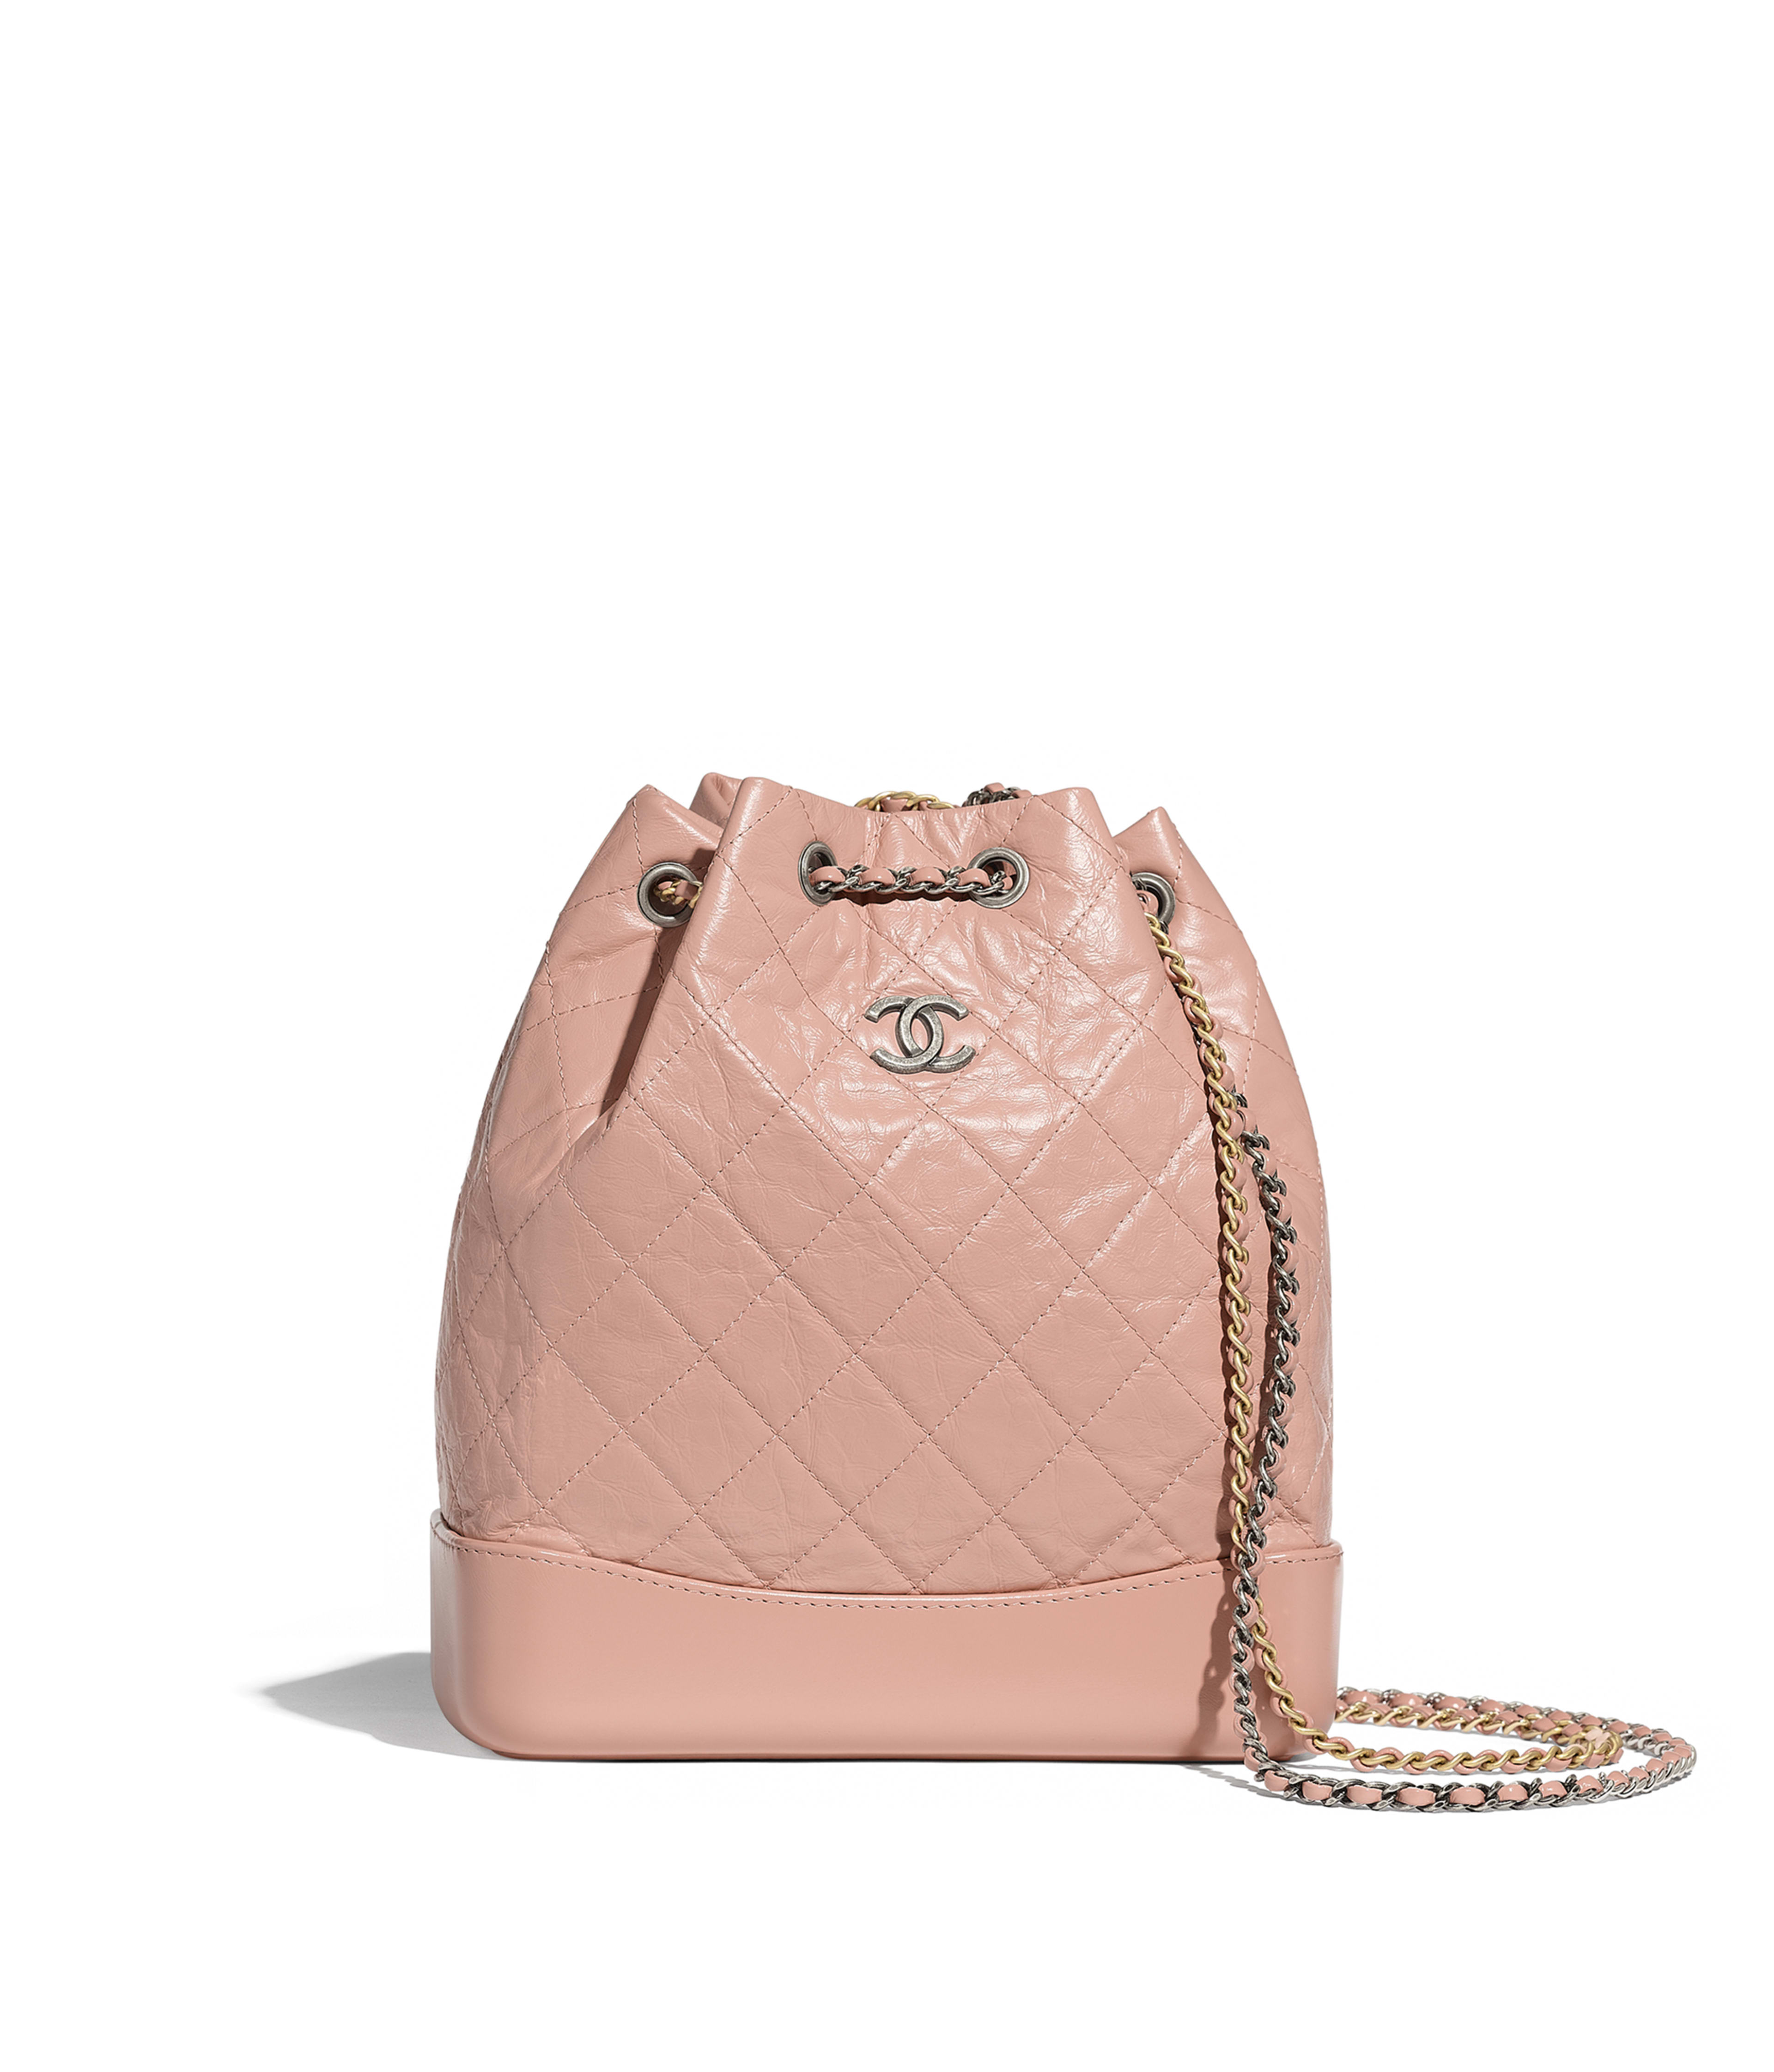 4a6d0fb6ab63cb CHANEL'S GABRIELLE Backpack Aged Calfskin, Smooth Calfskin, Silver-Tone &  Gold-Tone Metal, Light Pink Ref. A94502Y61477N0430